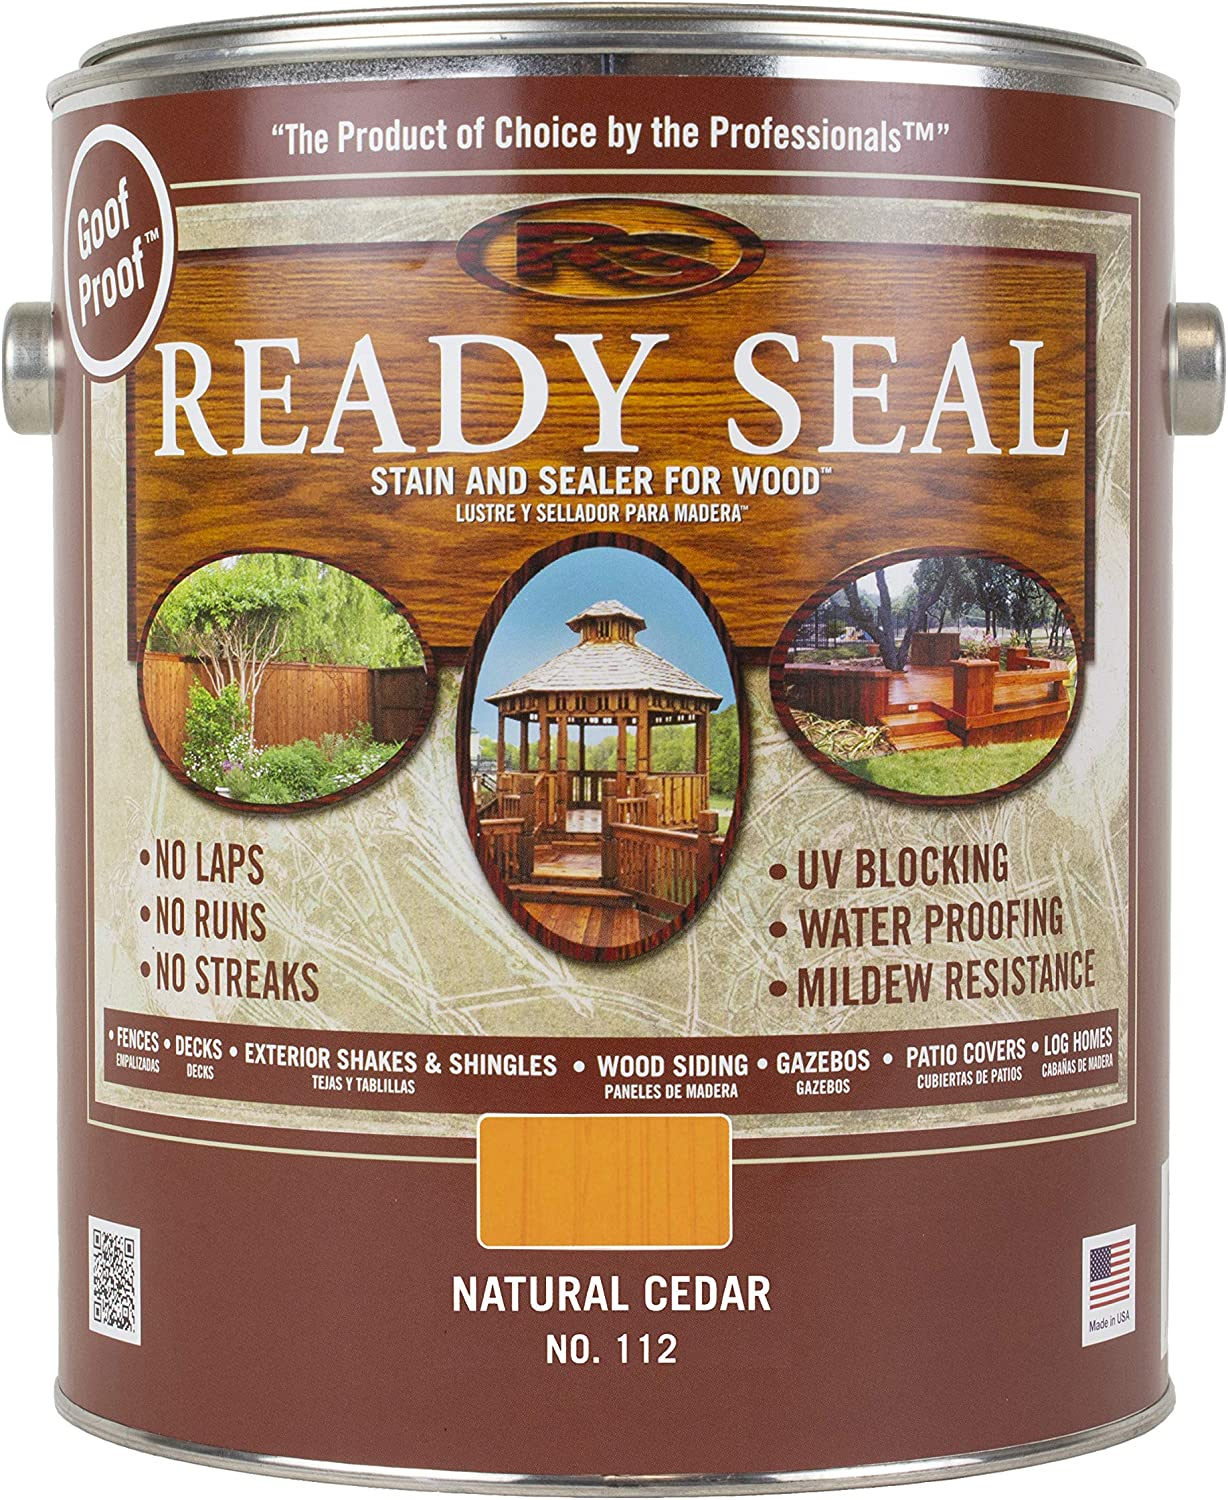 Ready Seal 112 Exterior Stain and Sealer